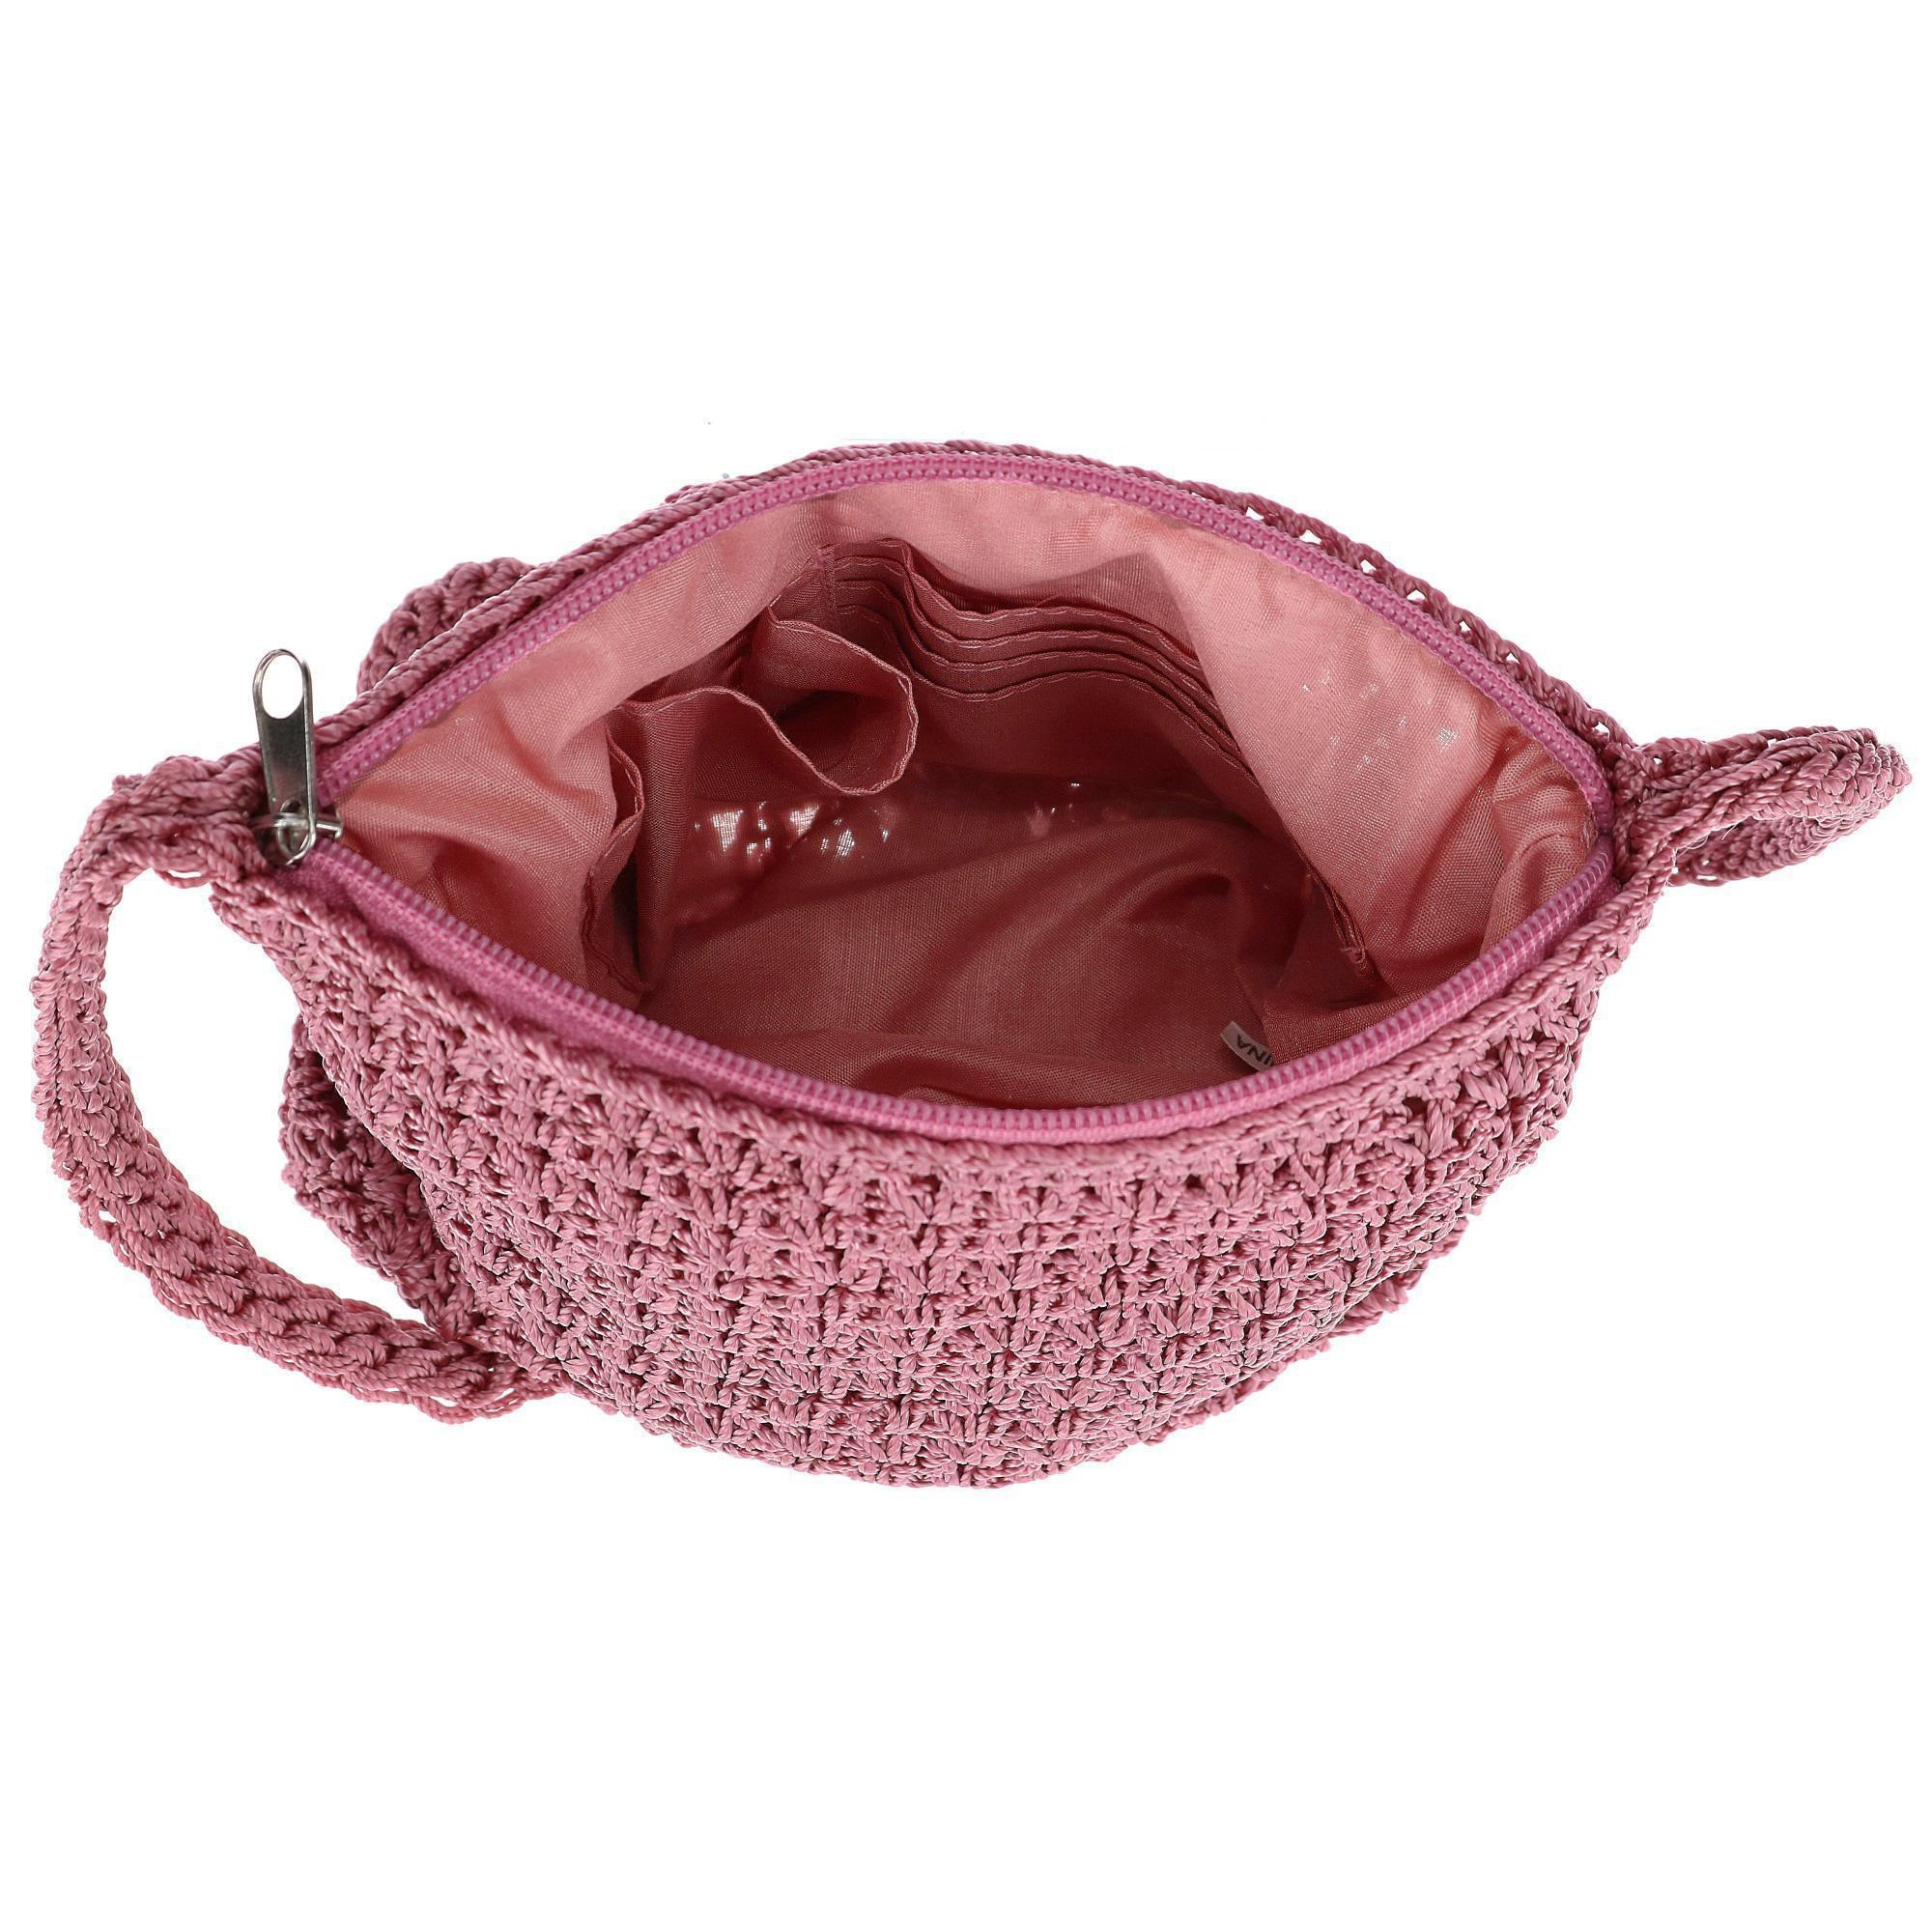 New-CTM-Women-039-s-Crochet-Crossbody-Handbag thumbnail 13